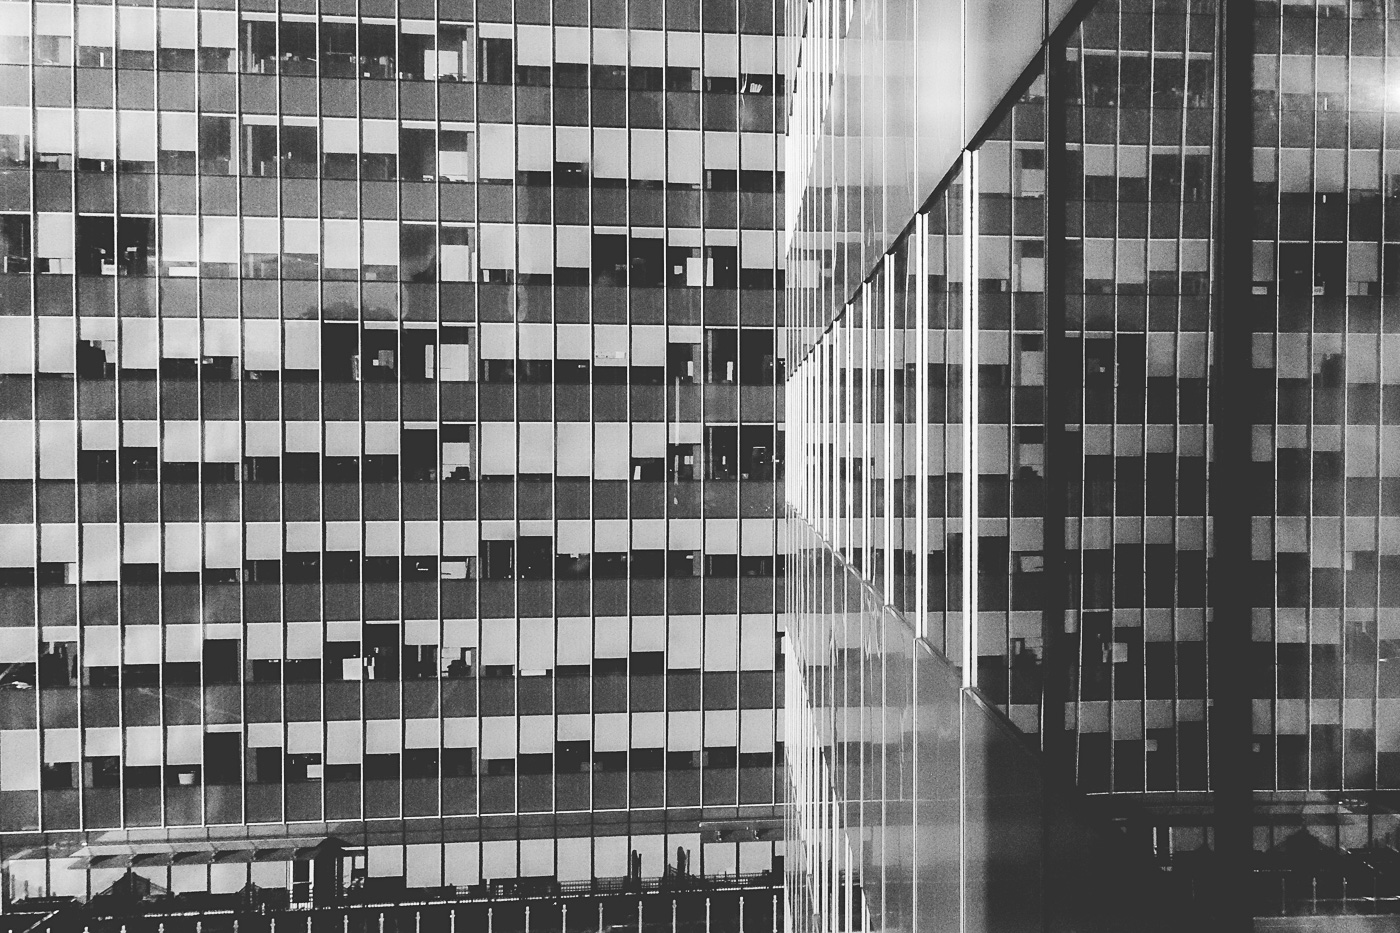 hb images - reflect buildings b-w - 2